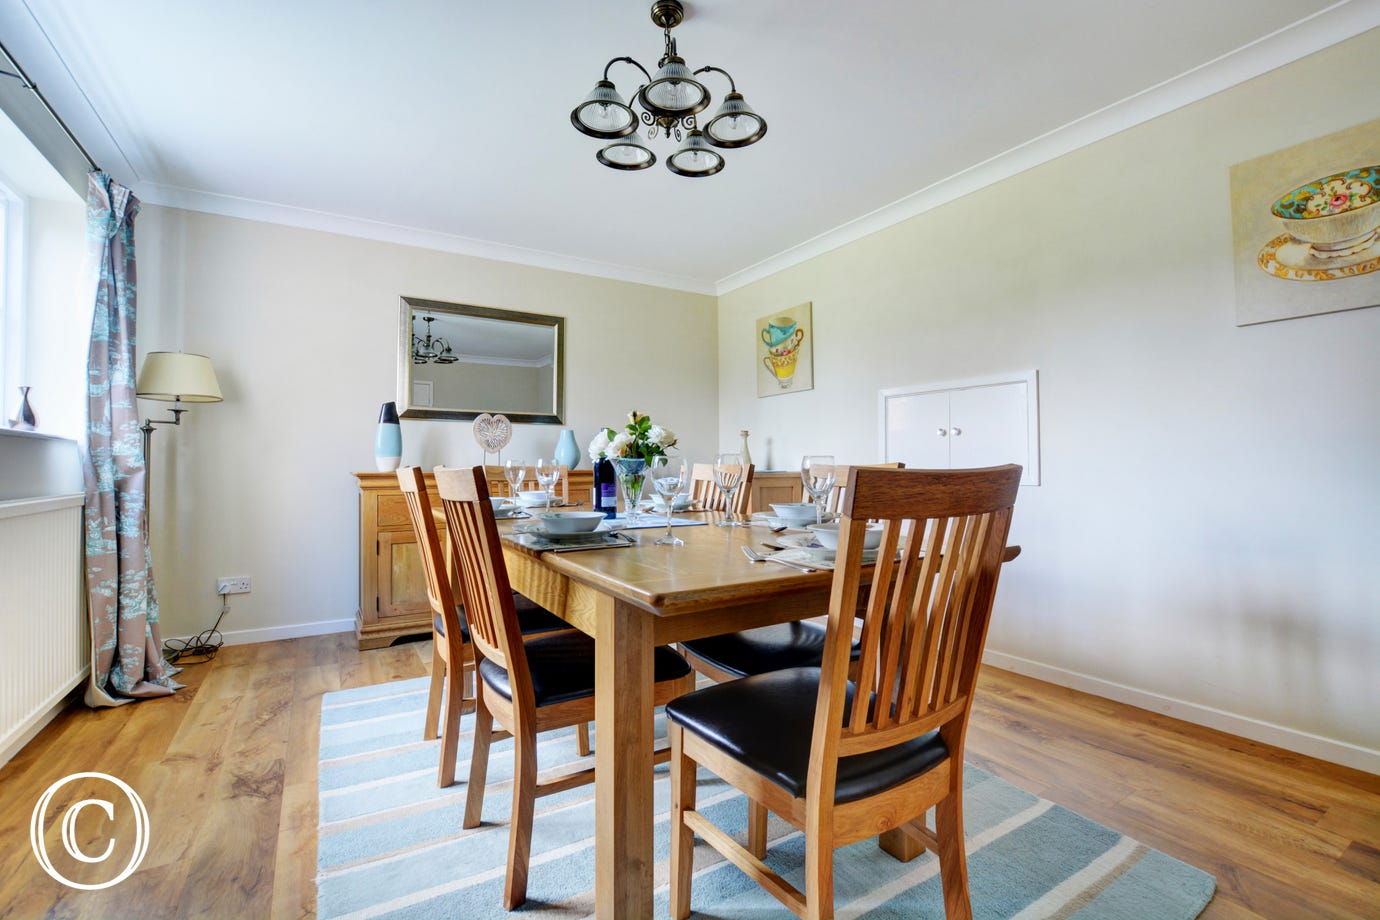 The charming dining room has a table and chairs, perfect for family meals